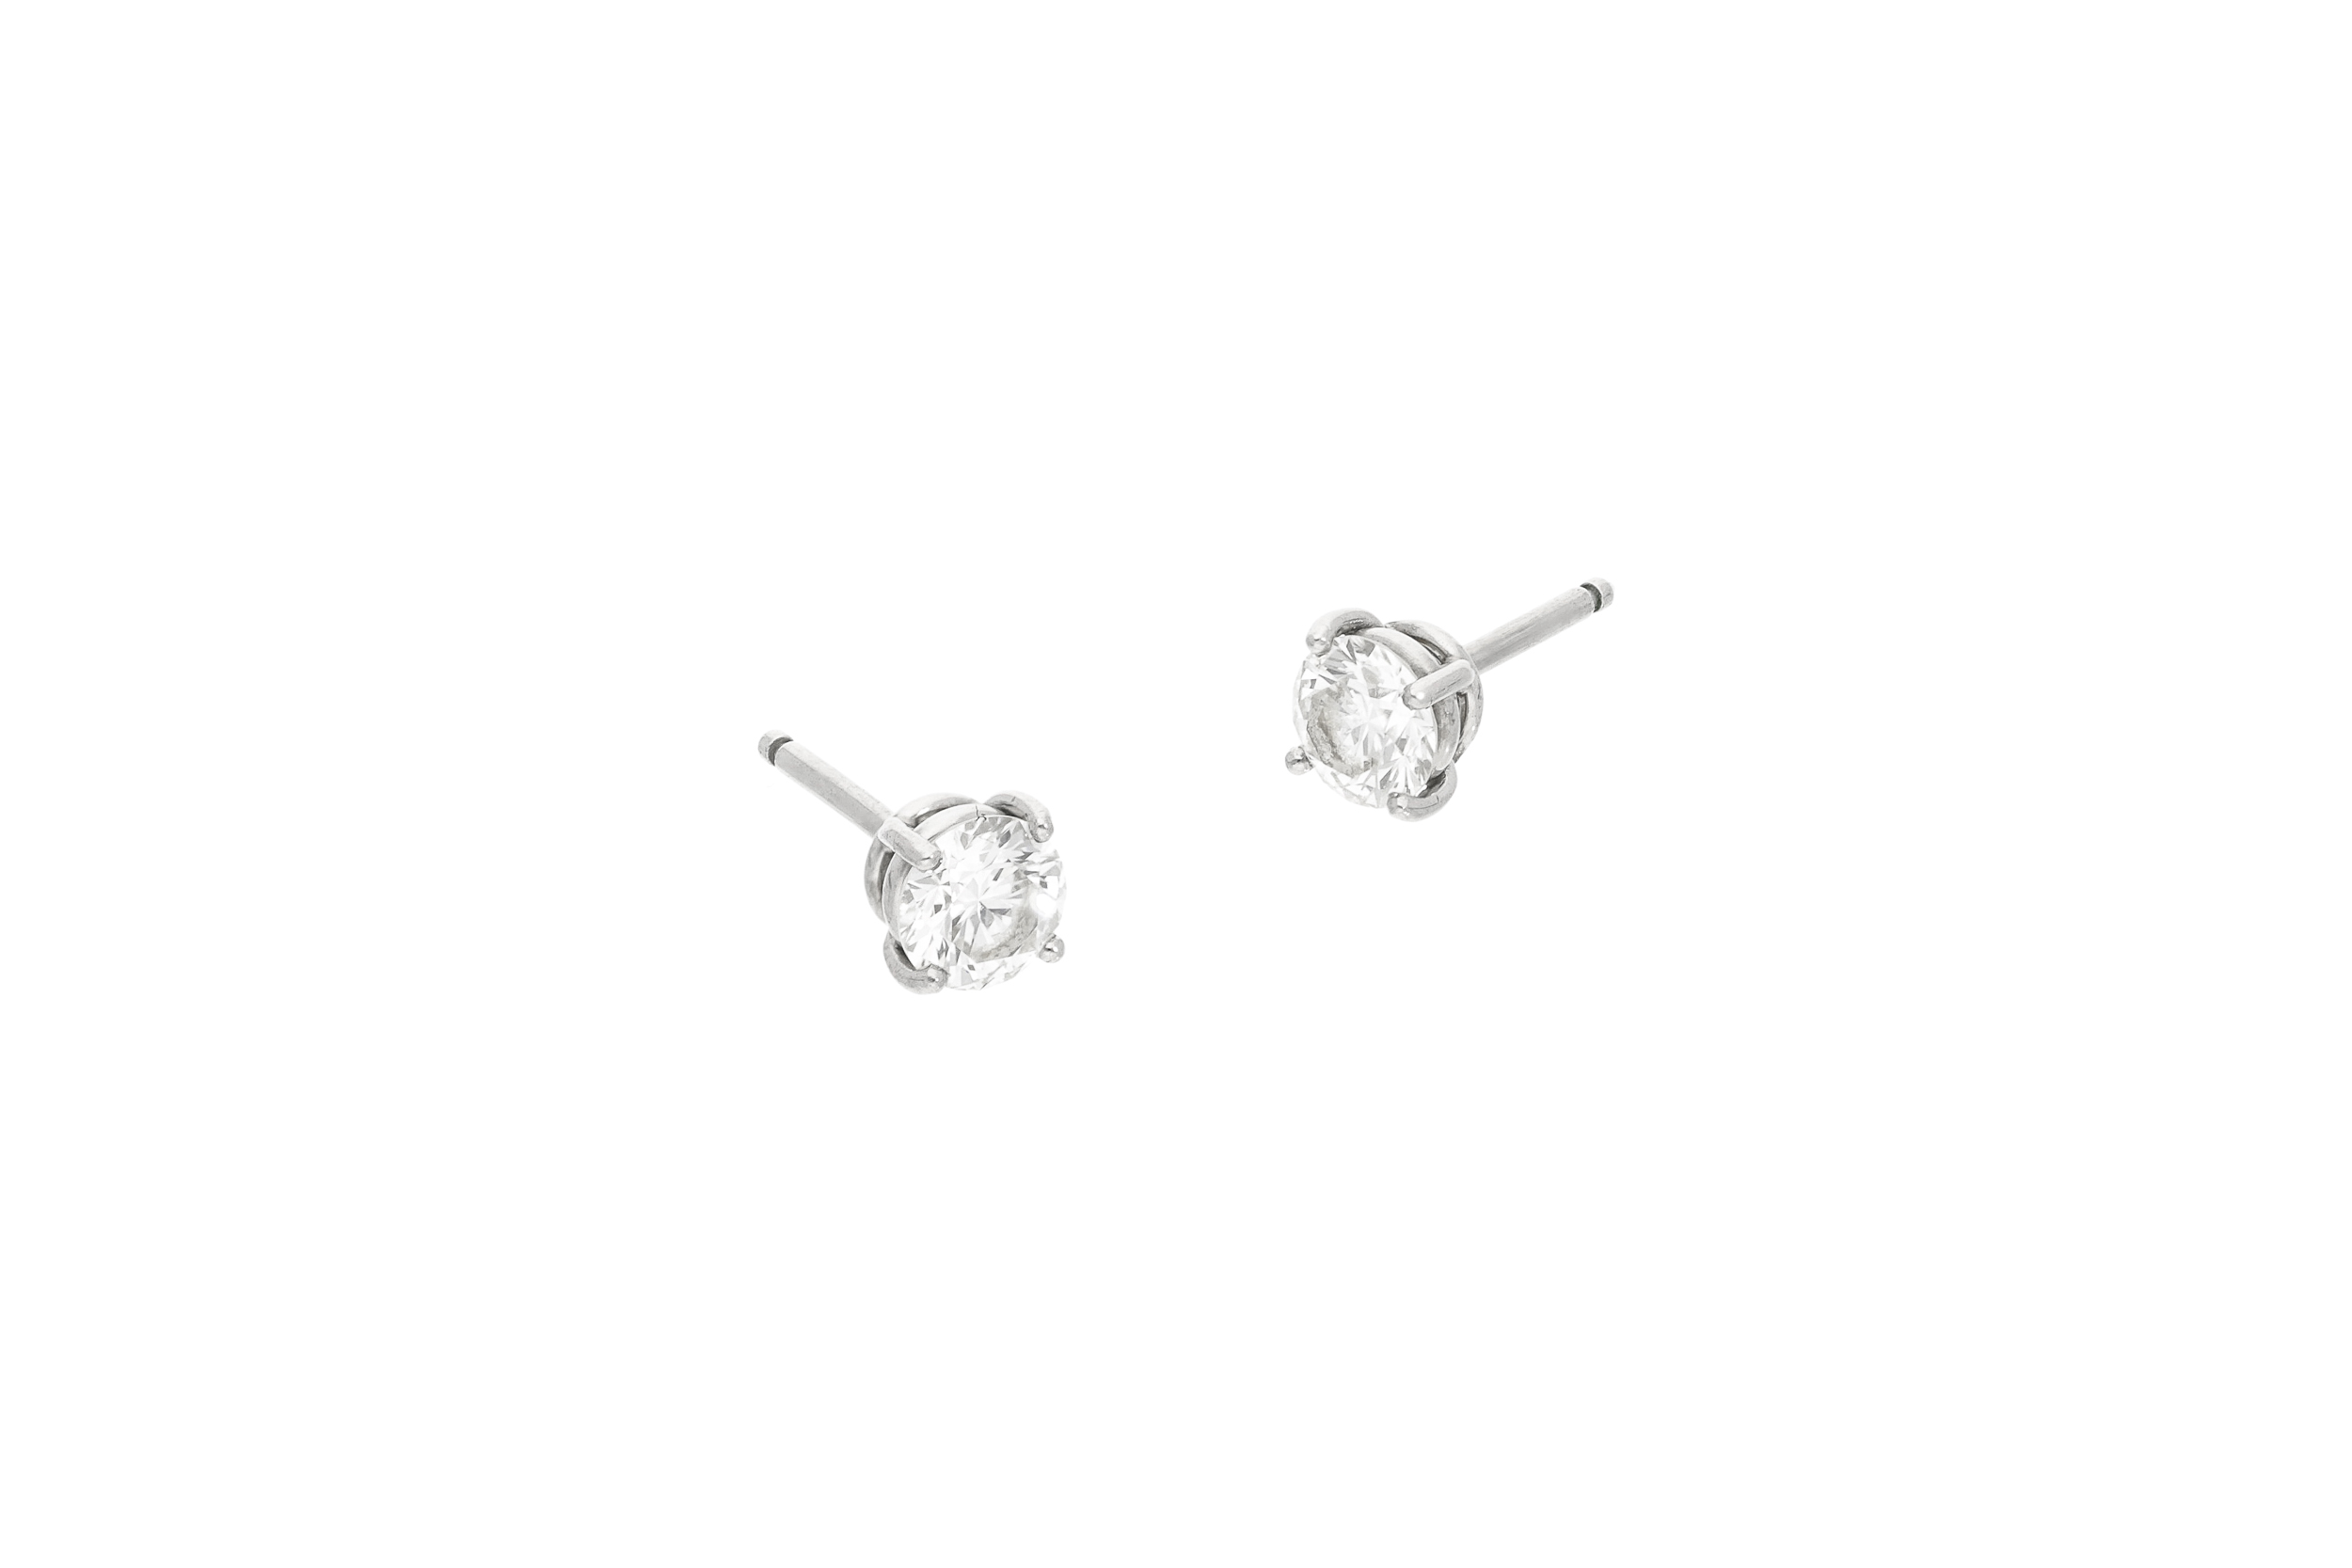 Diamond_stud_earrings_2.jpg